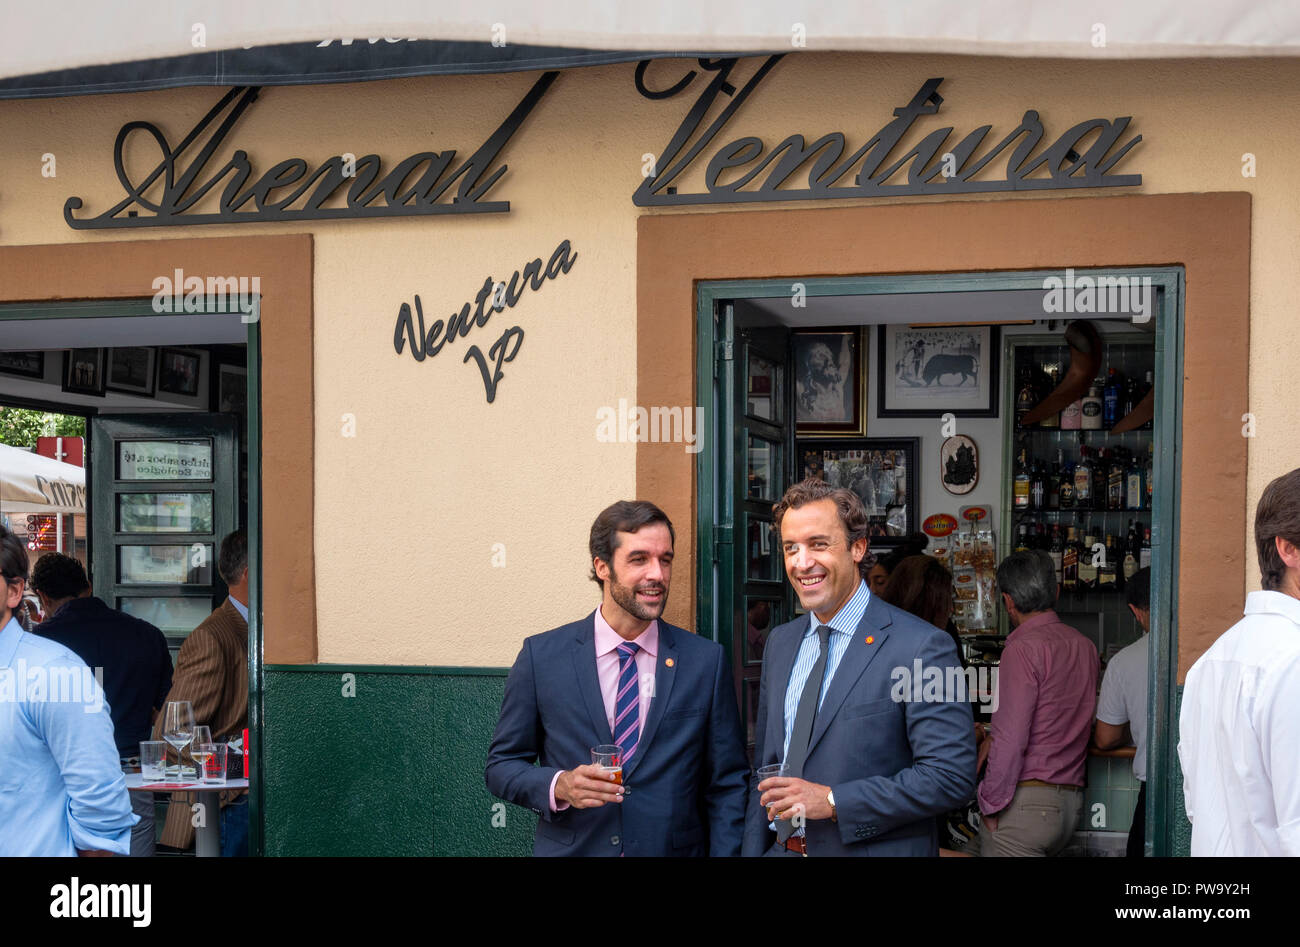 Two Spanish businessmen in suits and ties sharing a drink and a talk outside the Arenal Ventura bar in Seville, Andalusia, Spain - Stock Image